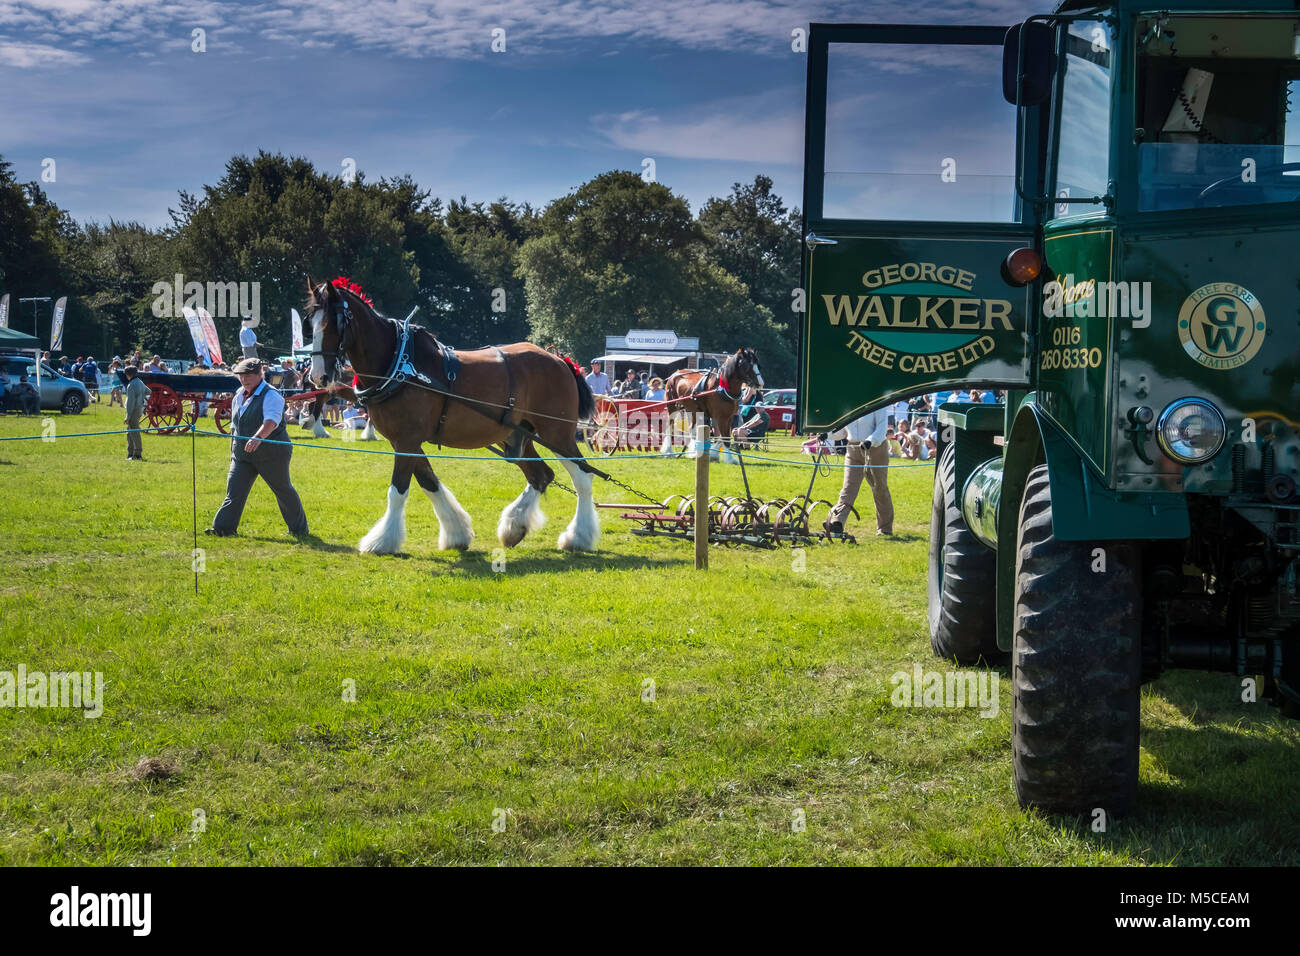 Demonstration of draught horses at Leicestershire Countryside Show. - Stock Image